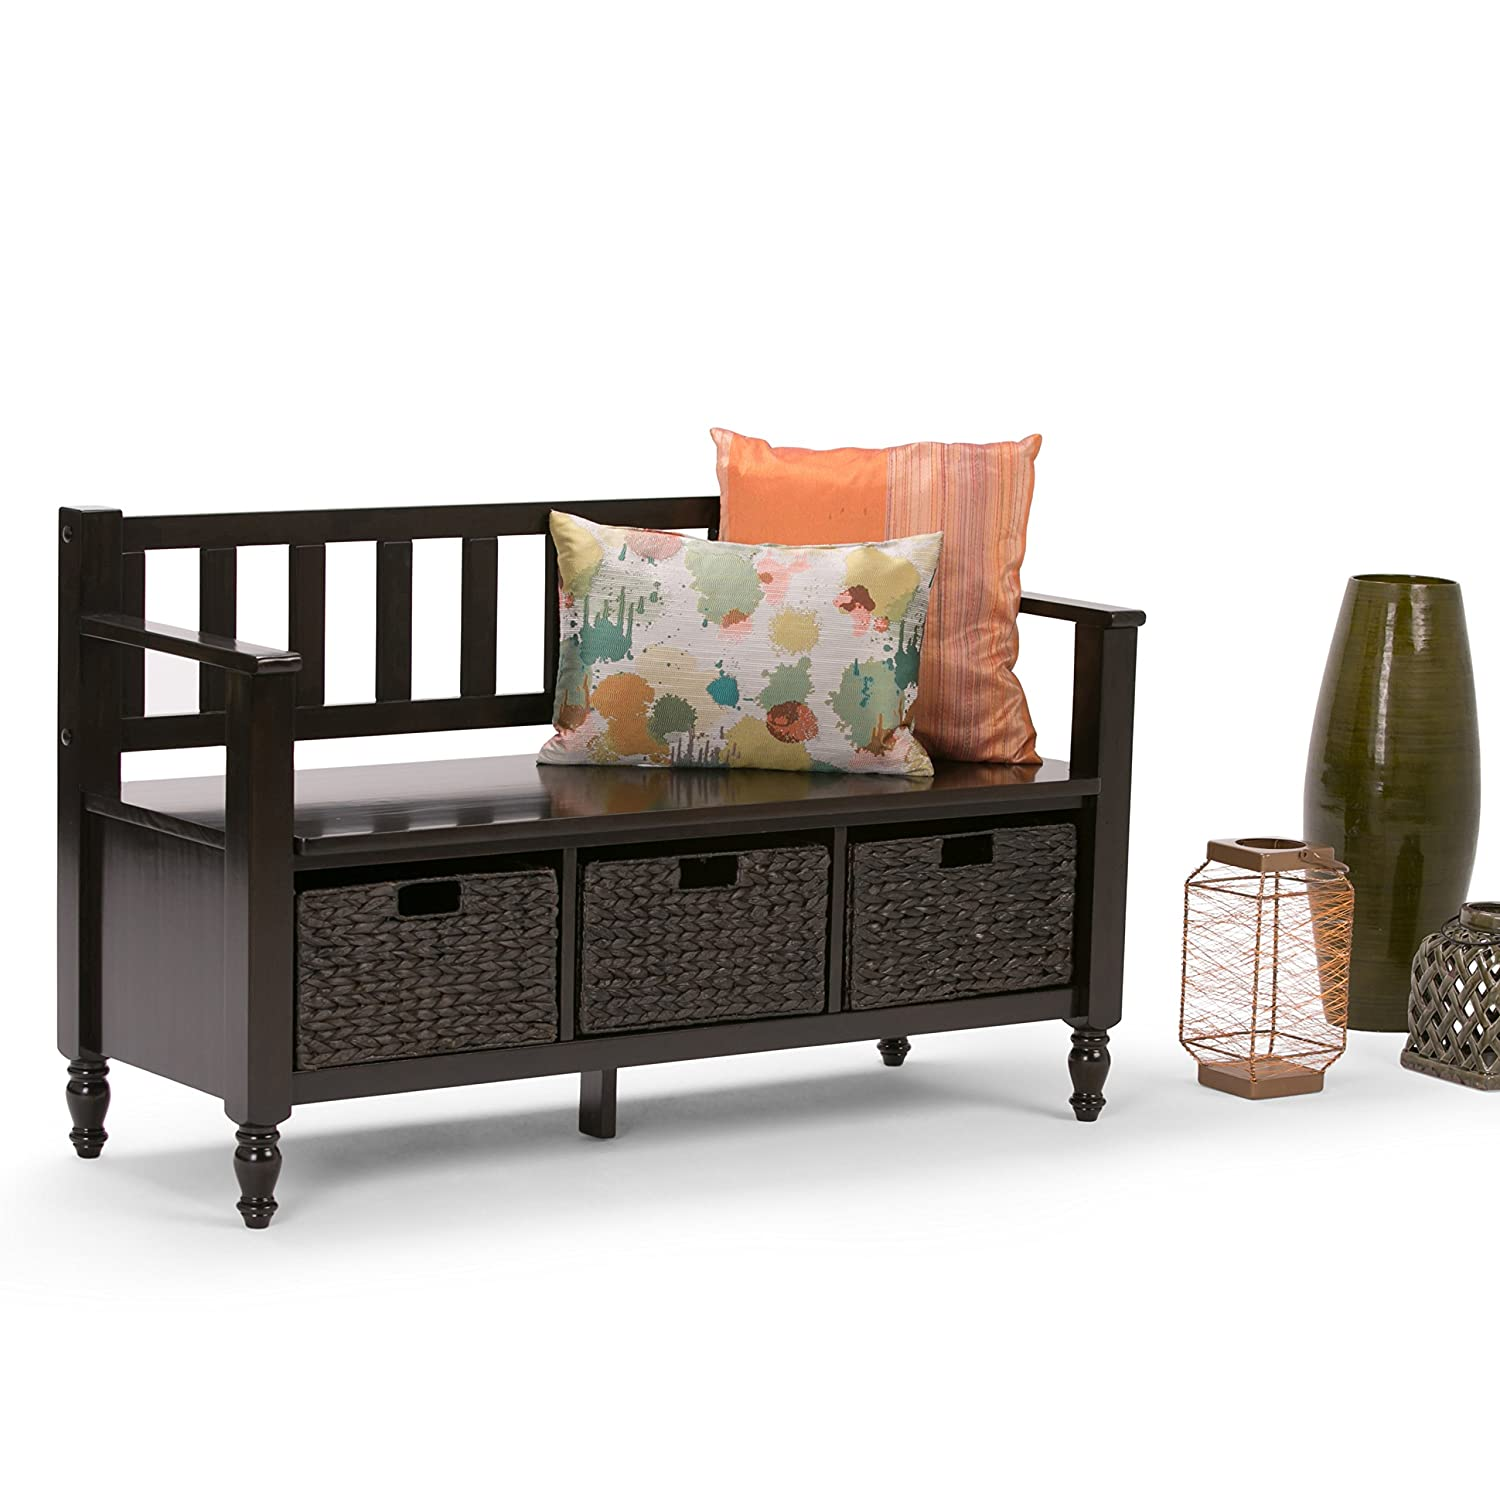 amazoncom simpli home dakota entryway storage bench w 3 hyacinth baskets dark brown kitchen u0026 dining